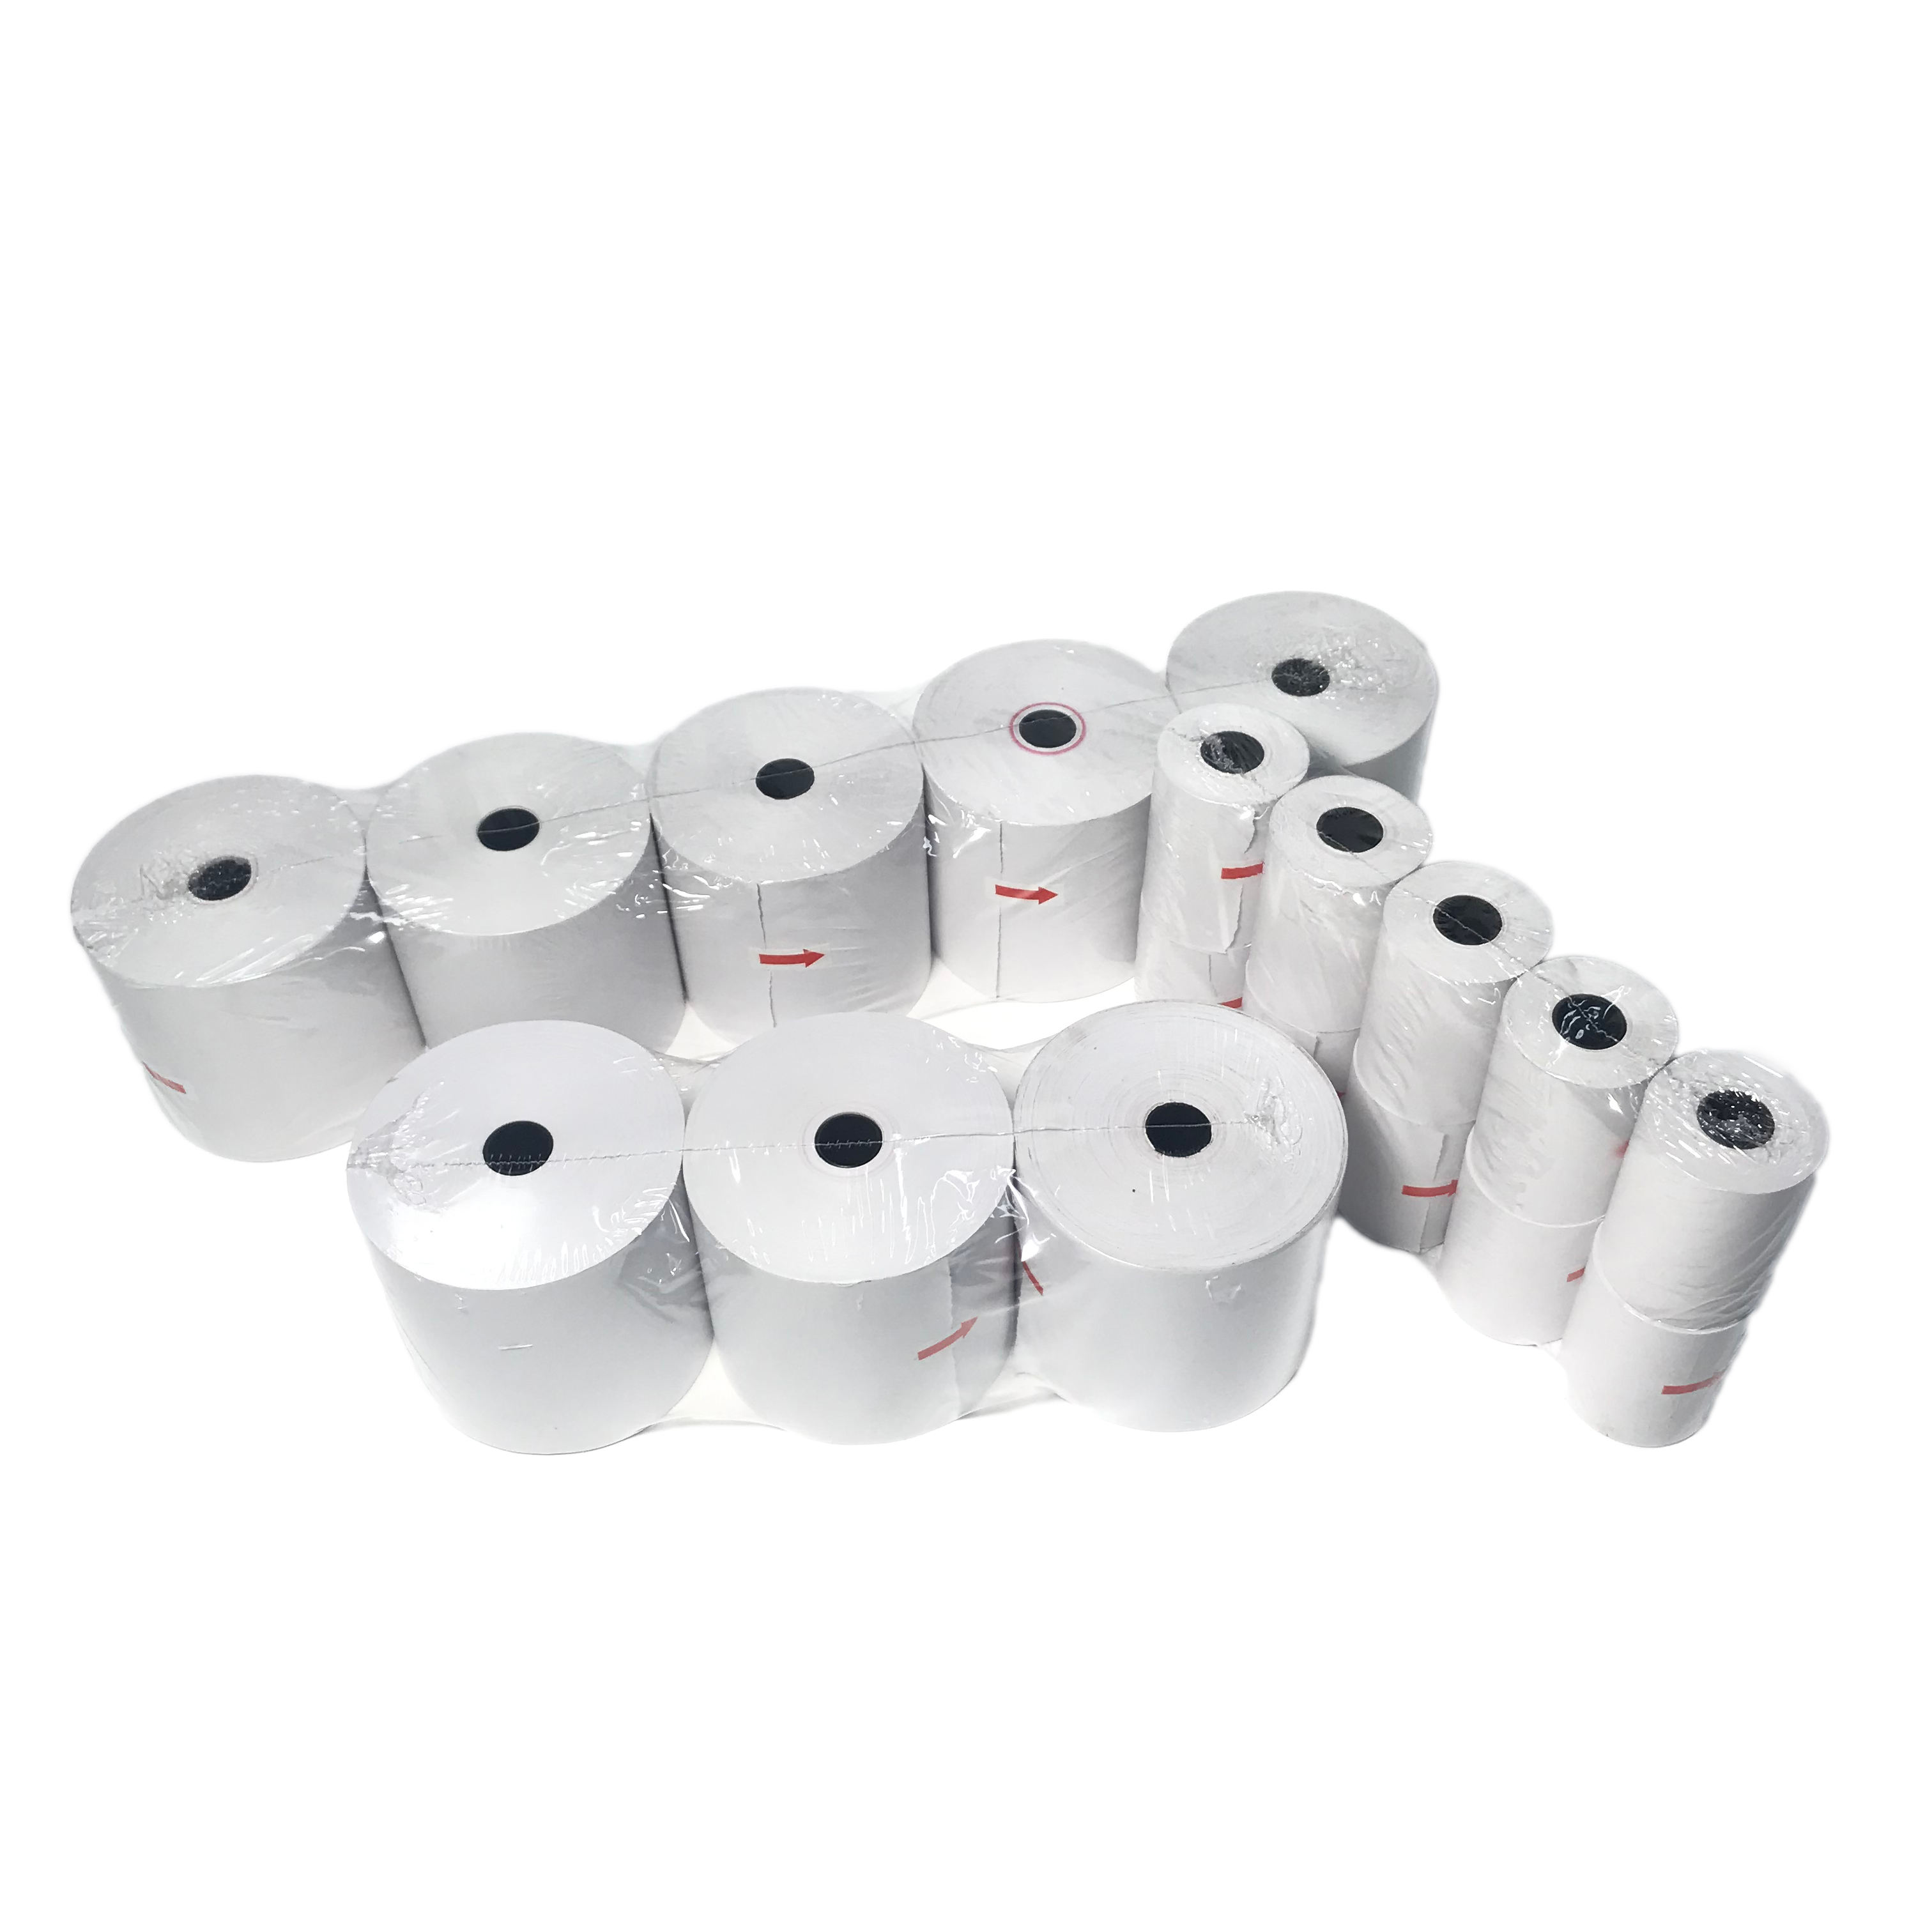 Populaire Pos Creditcard Ontvangst 58Mm Thermisch Papier Roll